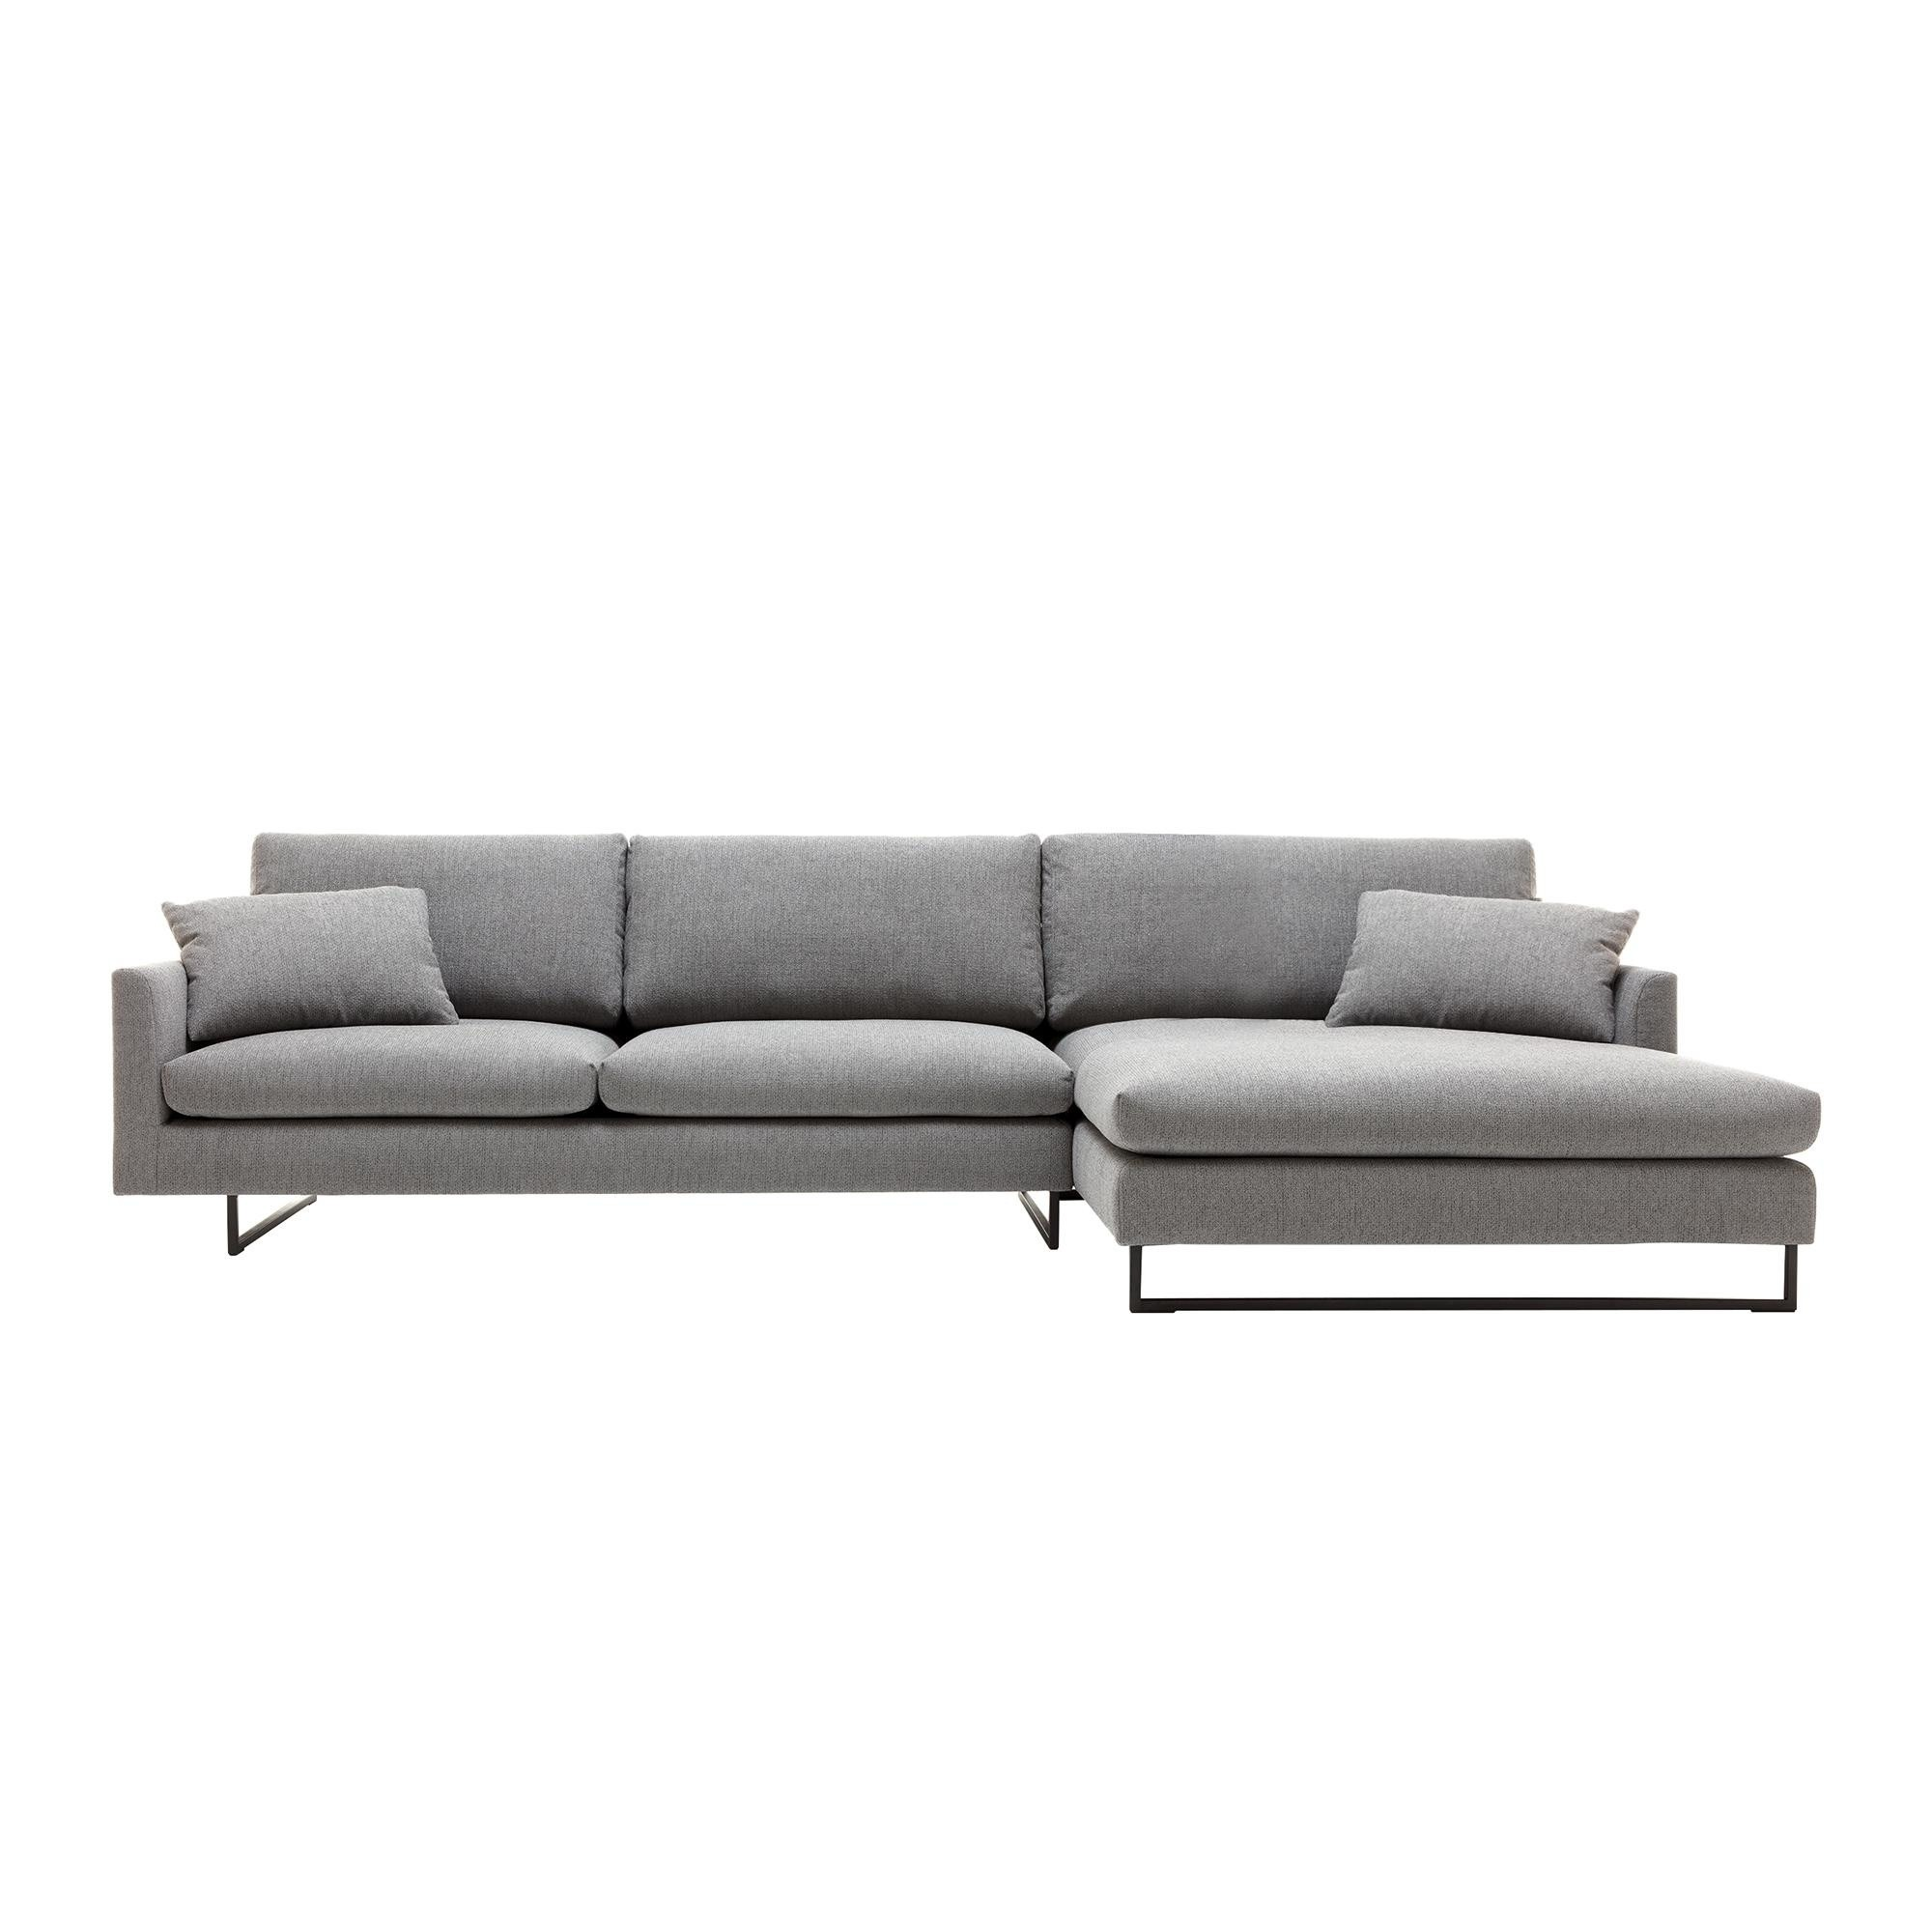 Freistil Rolf Benz 134 Lounge